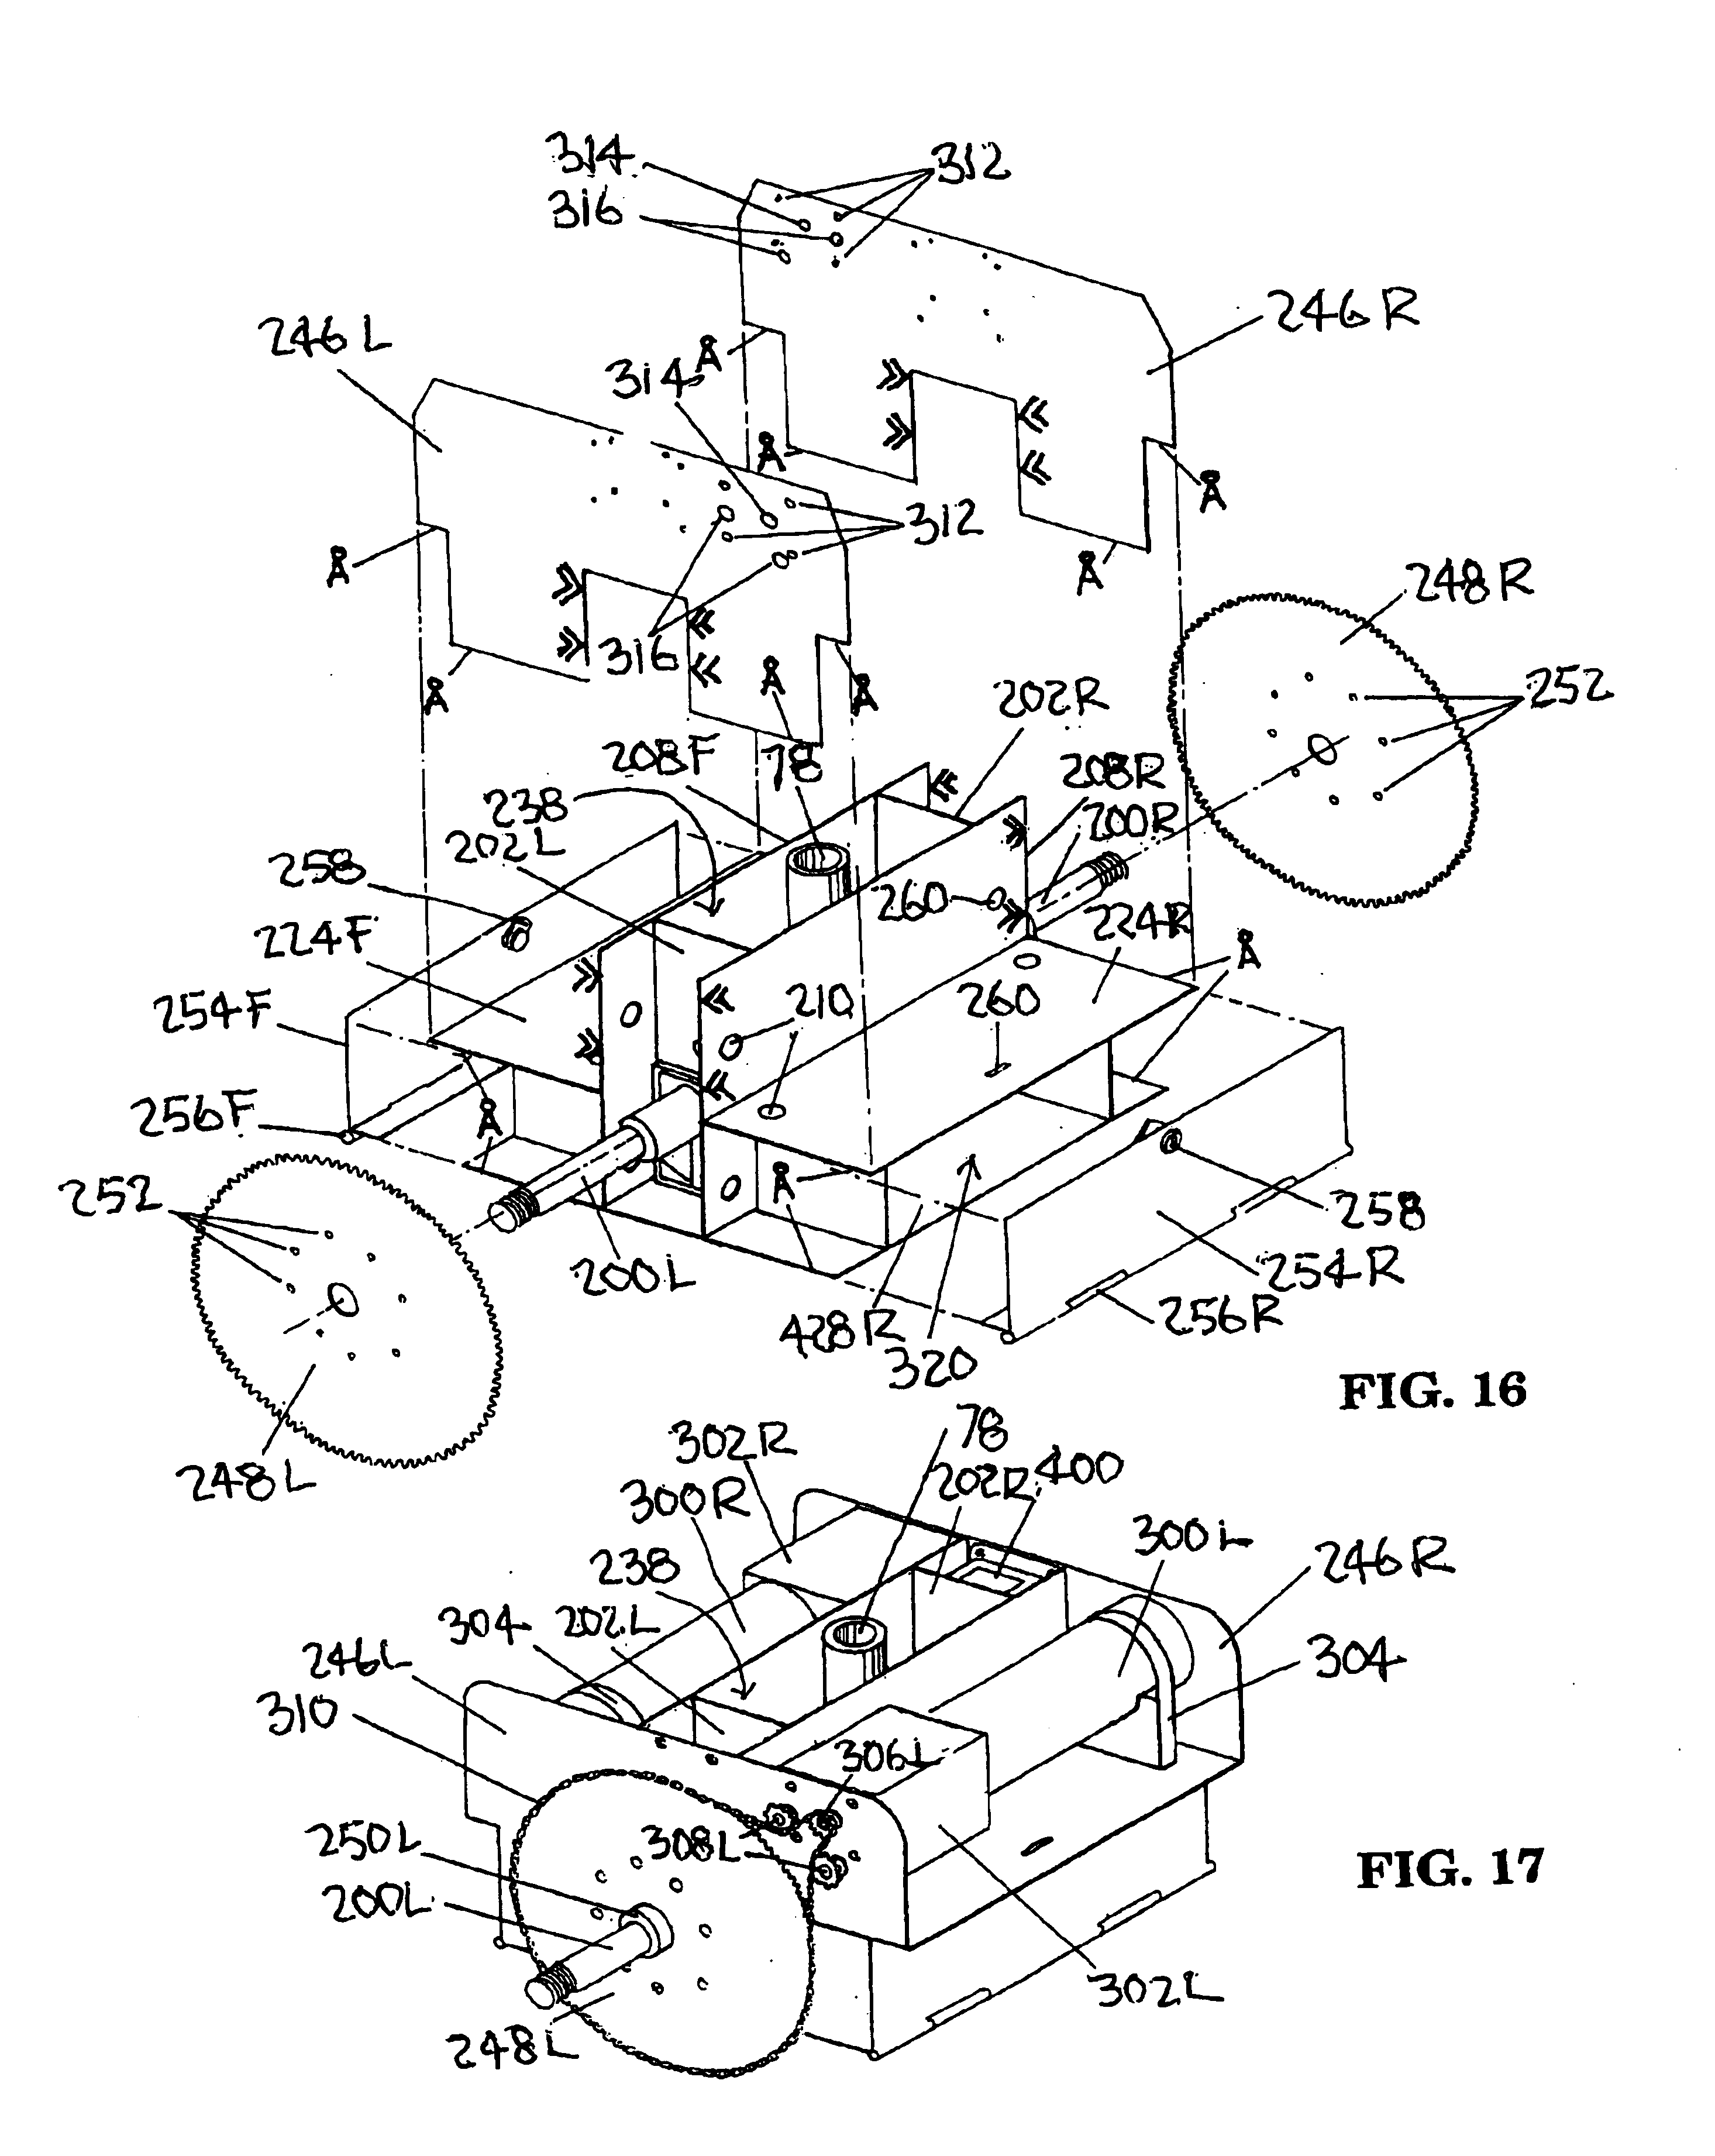 24 volt electric rascal controller diagram moreover patent us6758291